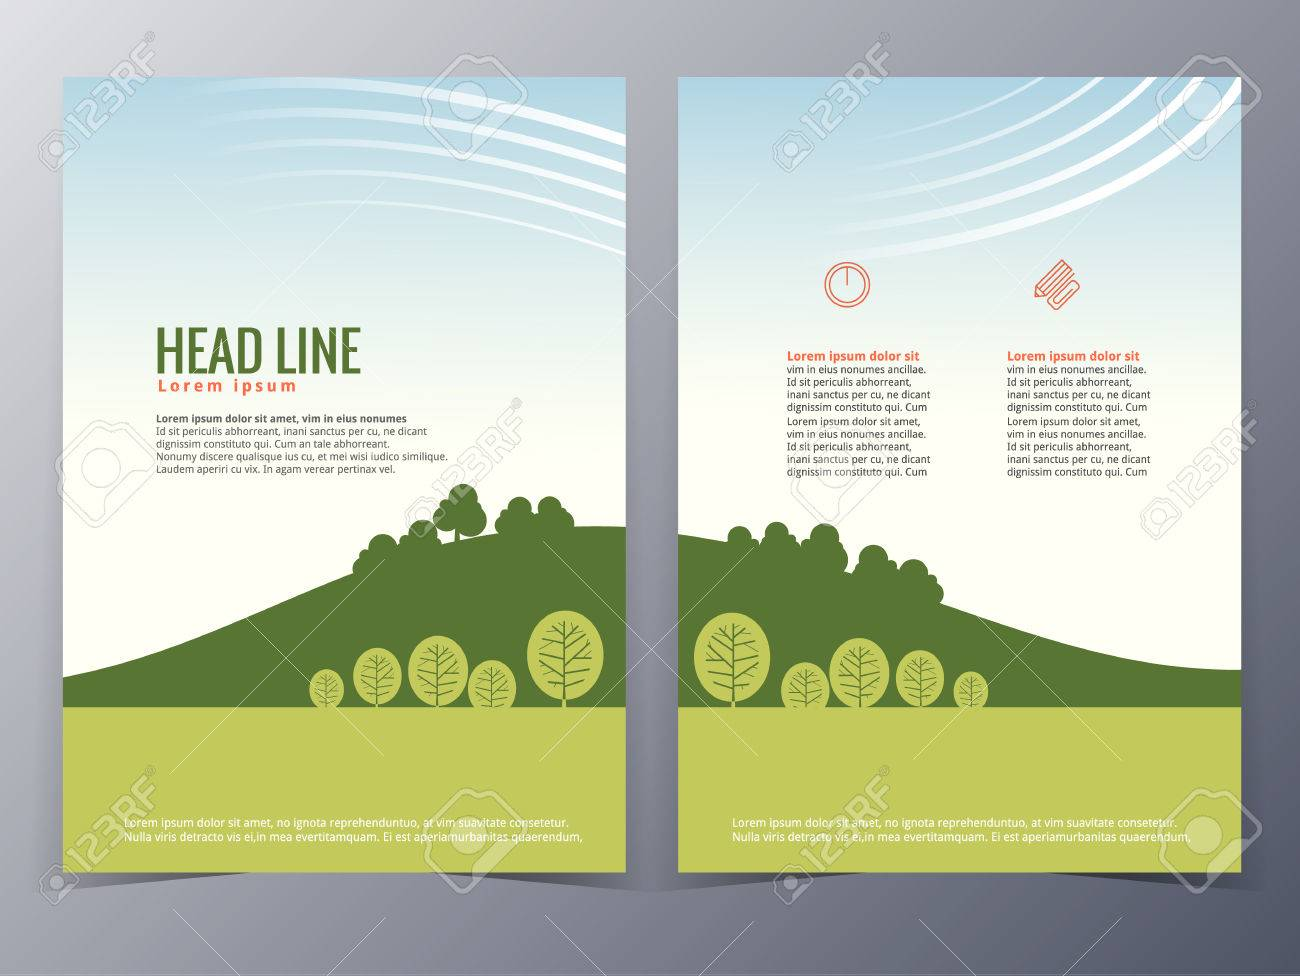 Business And Nature Brochure Design Template Vector In A4 Size     business and nature brochure design template vector in A4 size for use as  company annual report